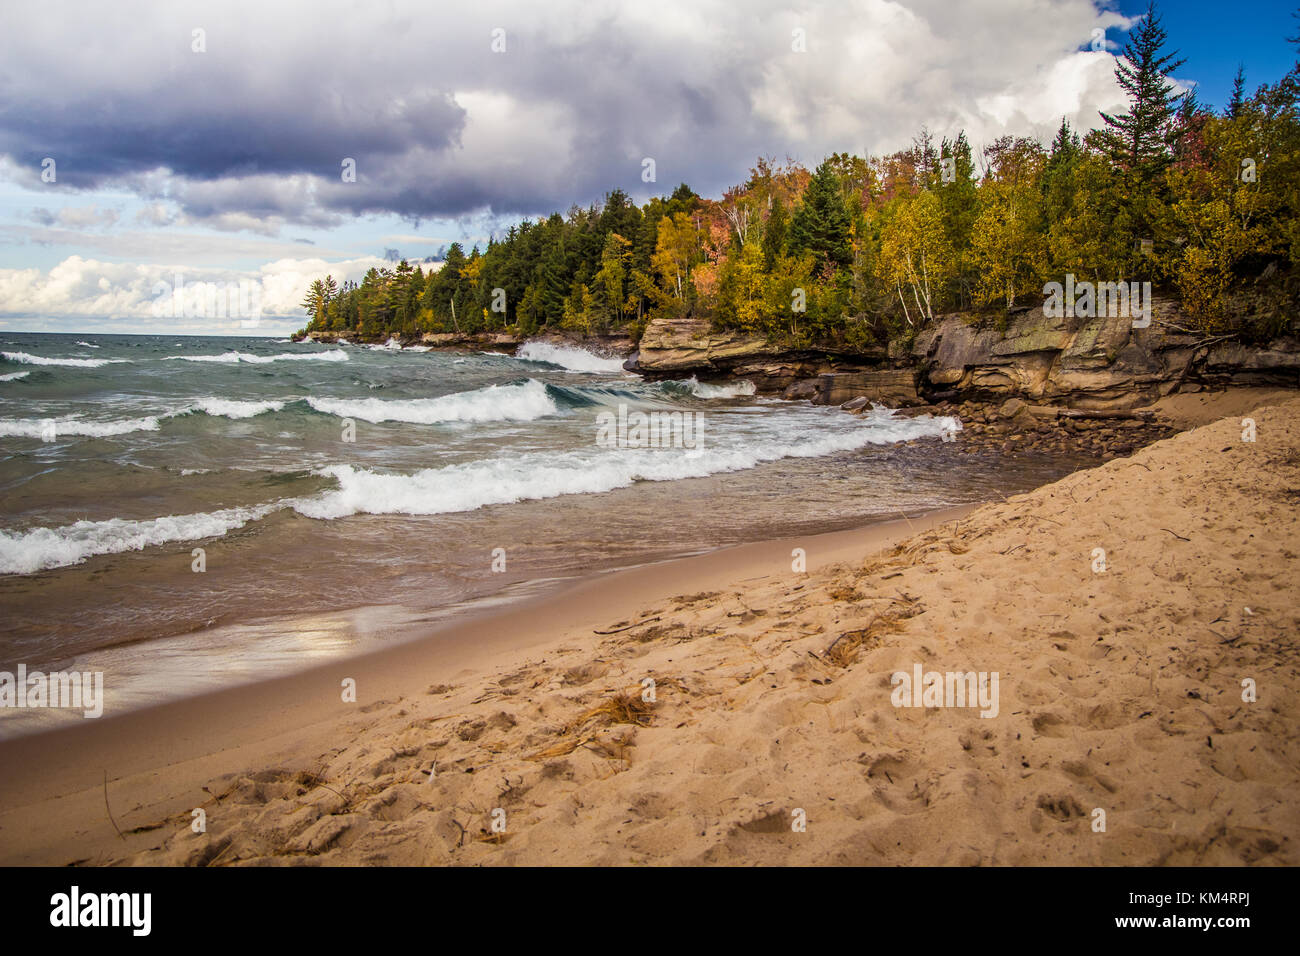 Lago nacional Pictured Rocks. La salvaje y agreste costa del Lago Superior a lo largo del Lago nacional Pictured Imagen De Stock